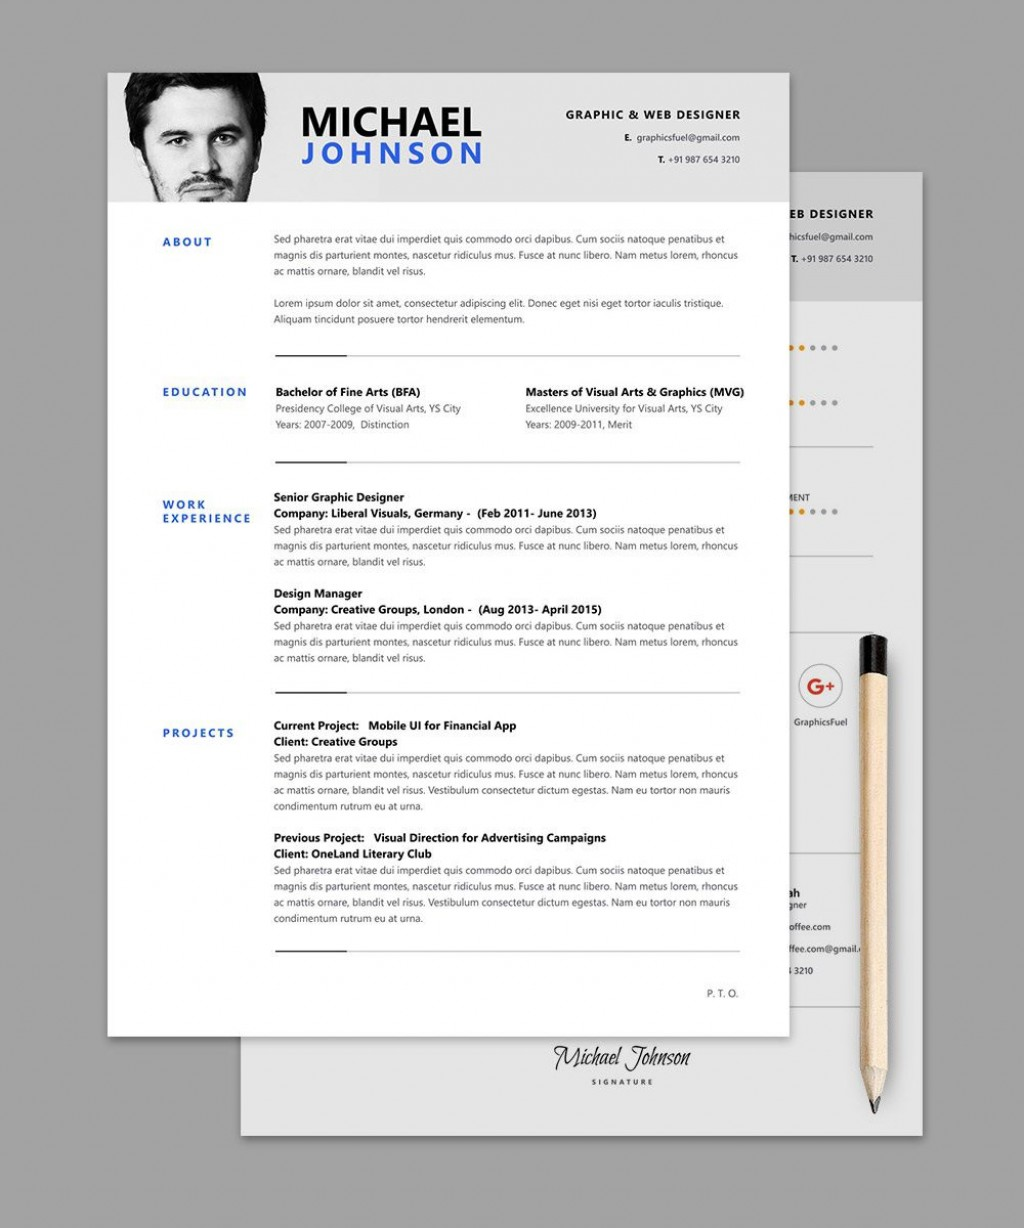 007 Fascinating Free Resume Template Microsoft Office Word 2007 High Def Large